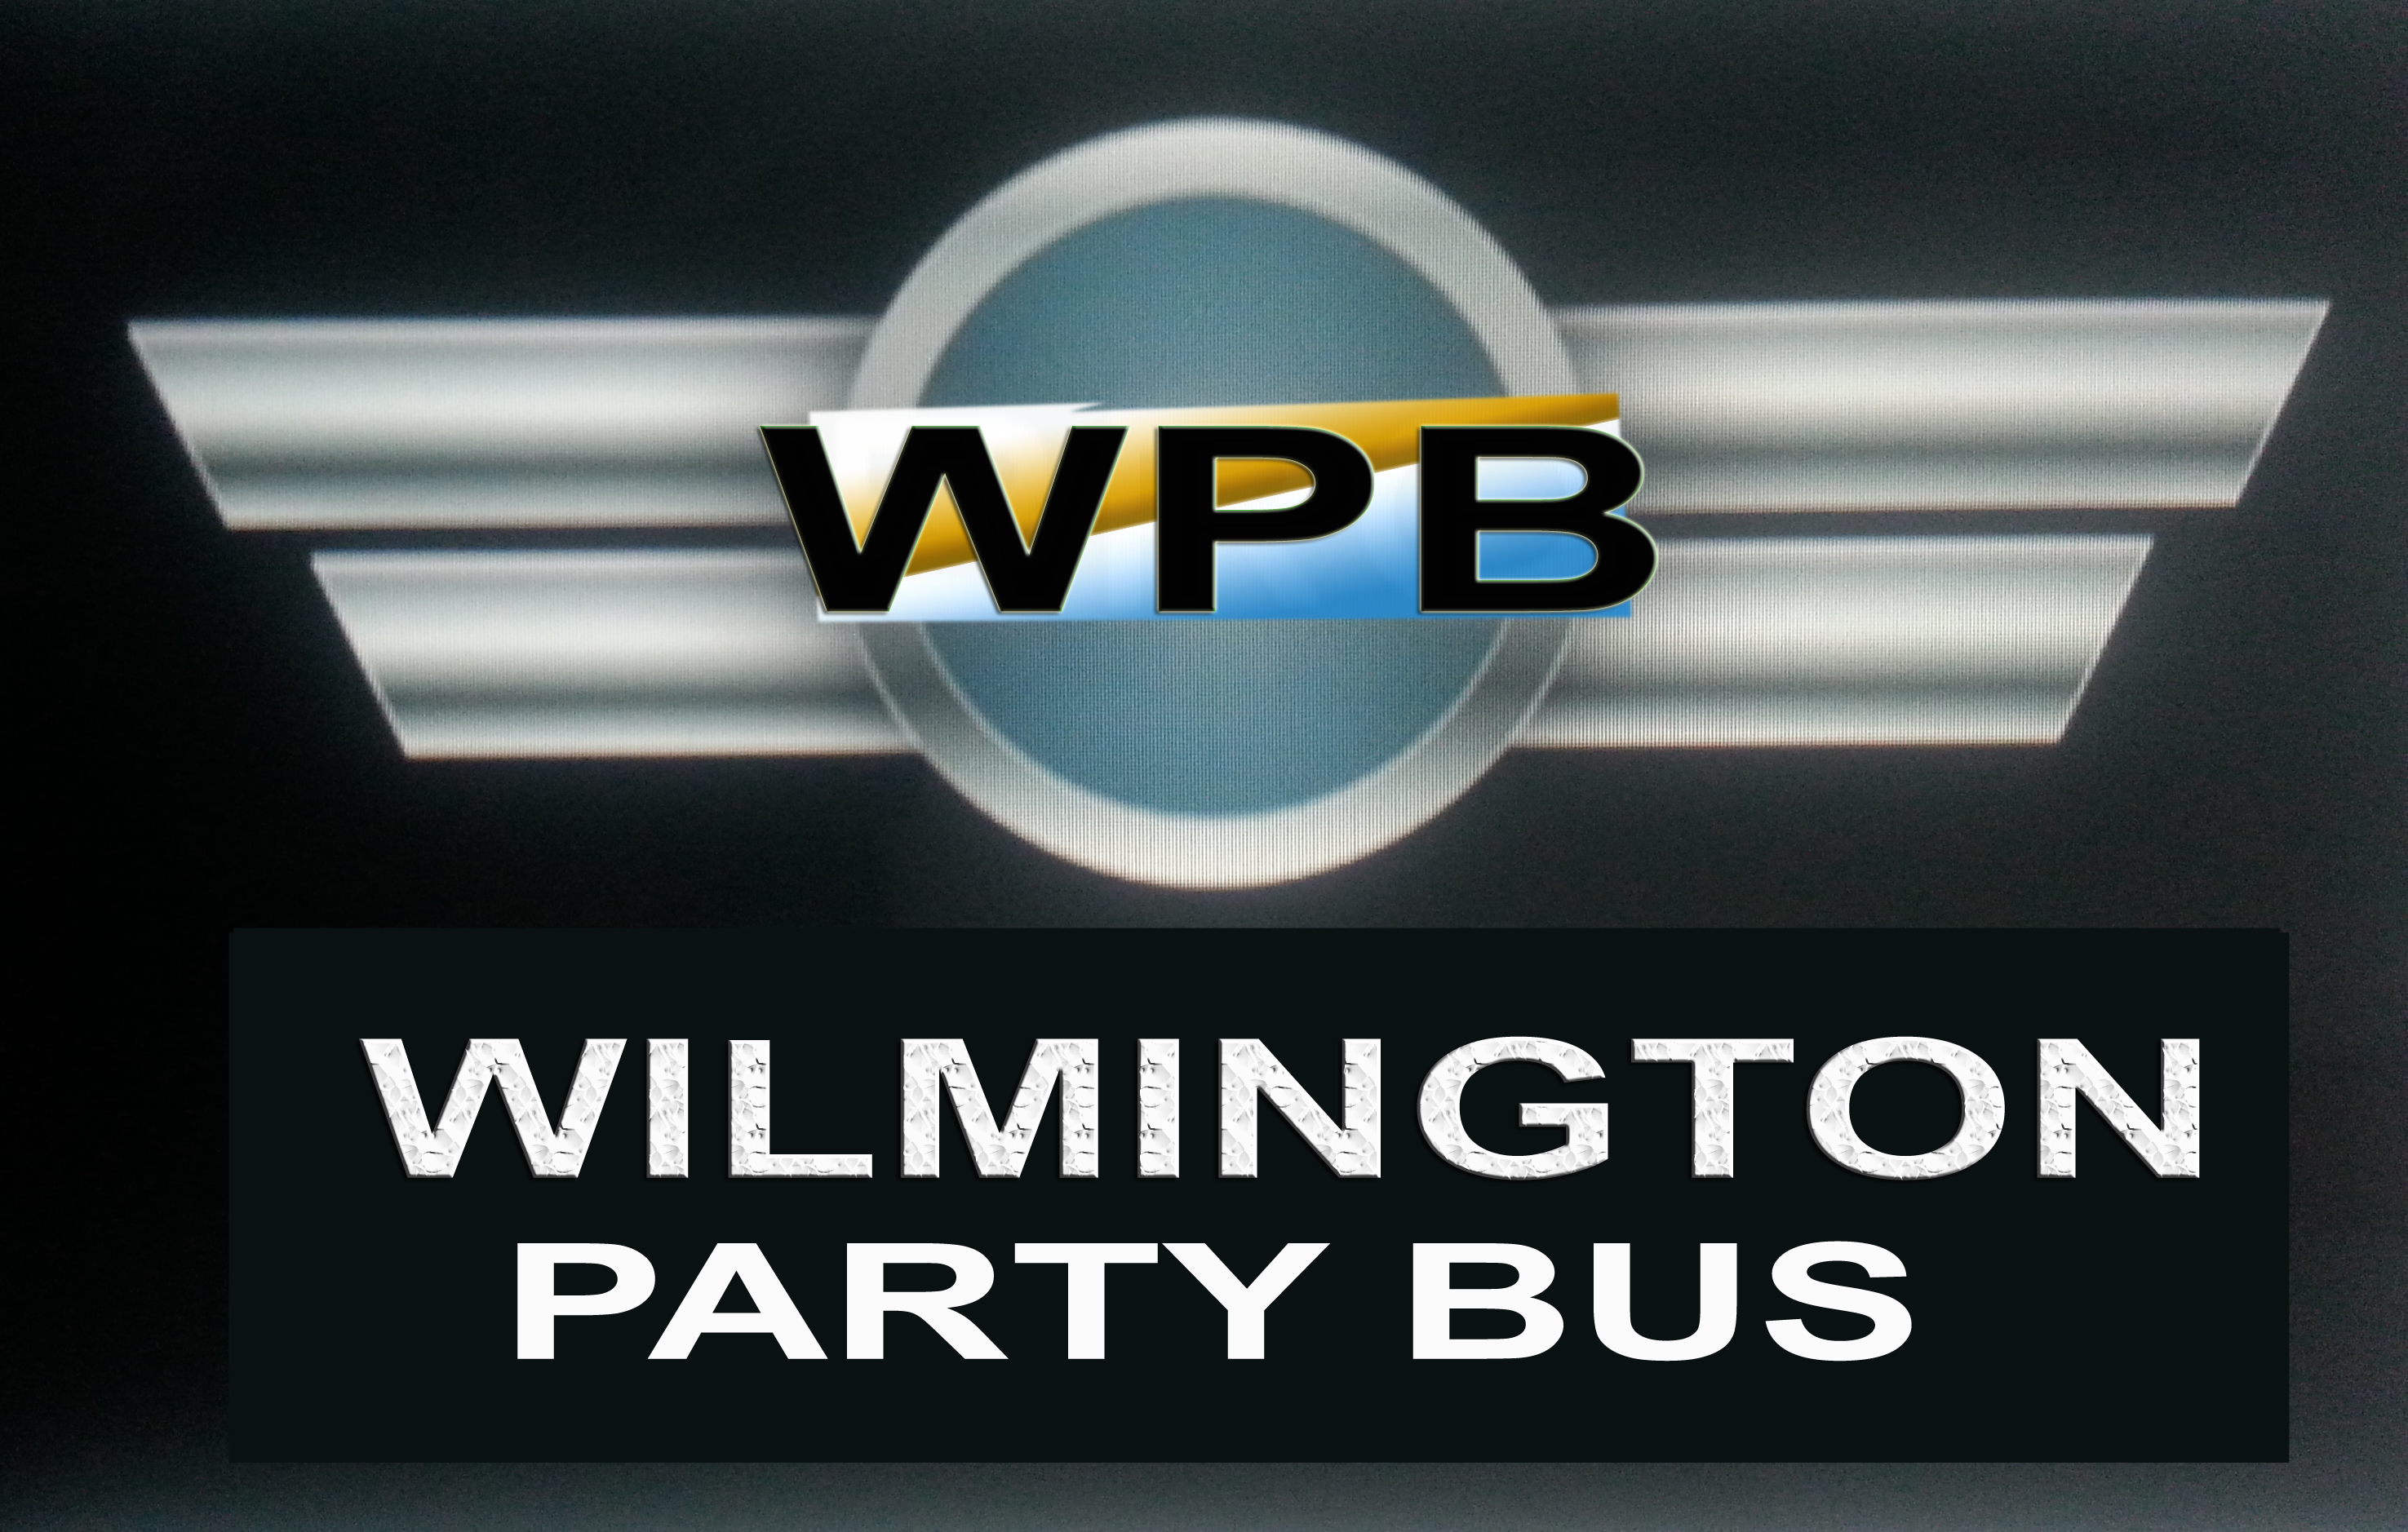 "Wilmington Party Bus Tel.Nos: 910-619-5890 Fax Nos:910-795-2712 Address: 4114 River Road, Wilmington, NC 28412 Email Address: info@wilmingtonpartybus.com ""Our company provides party bus rentals, Limousine for business, weddings and tours around the city."""